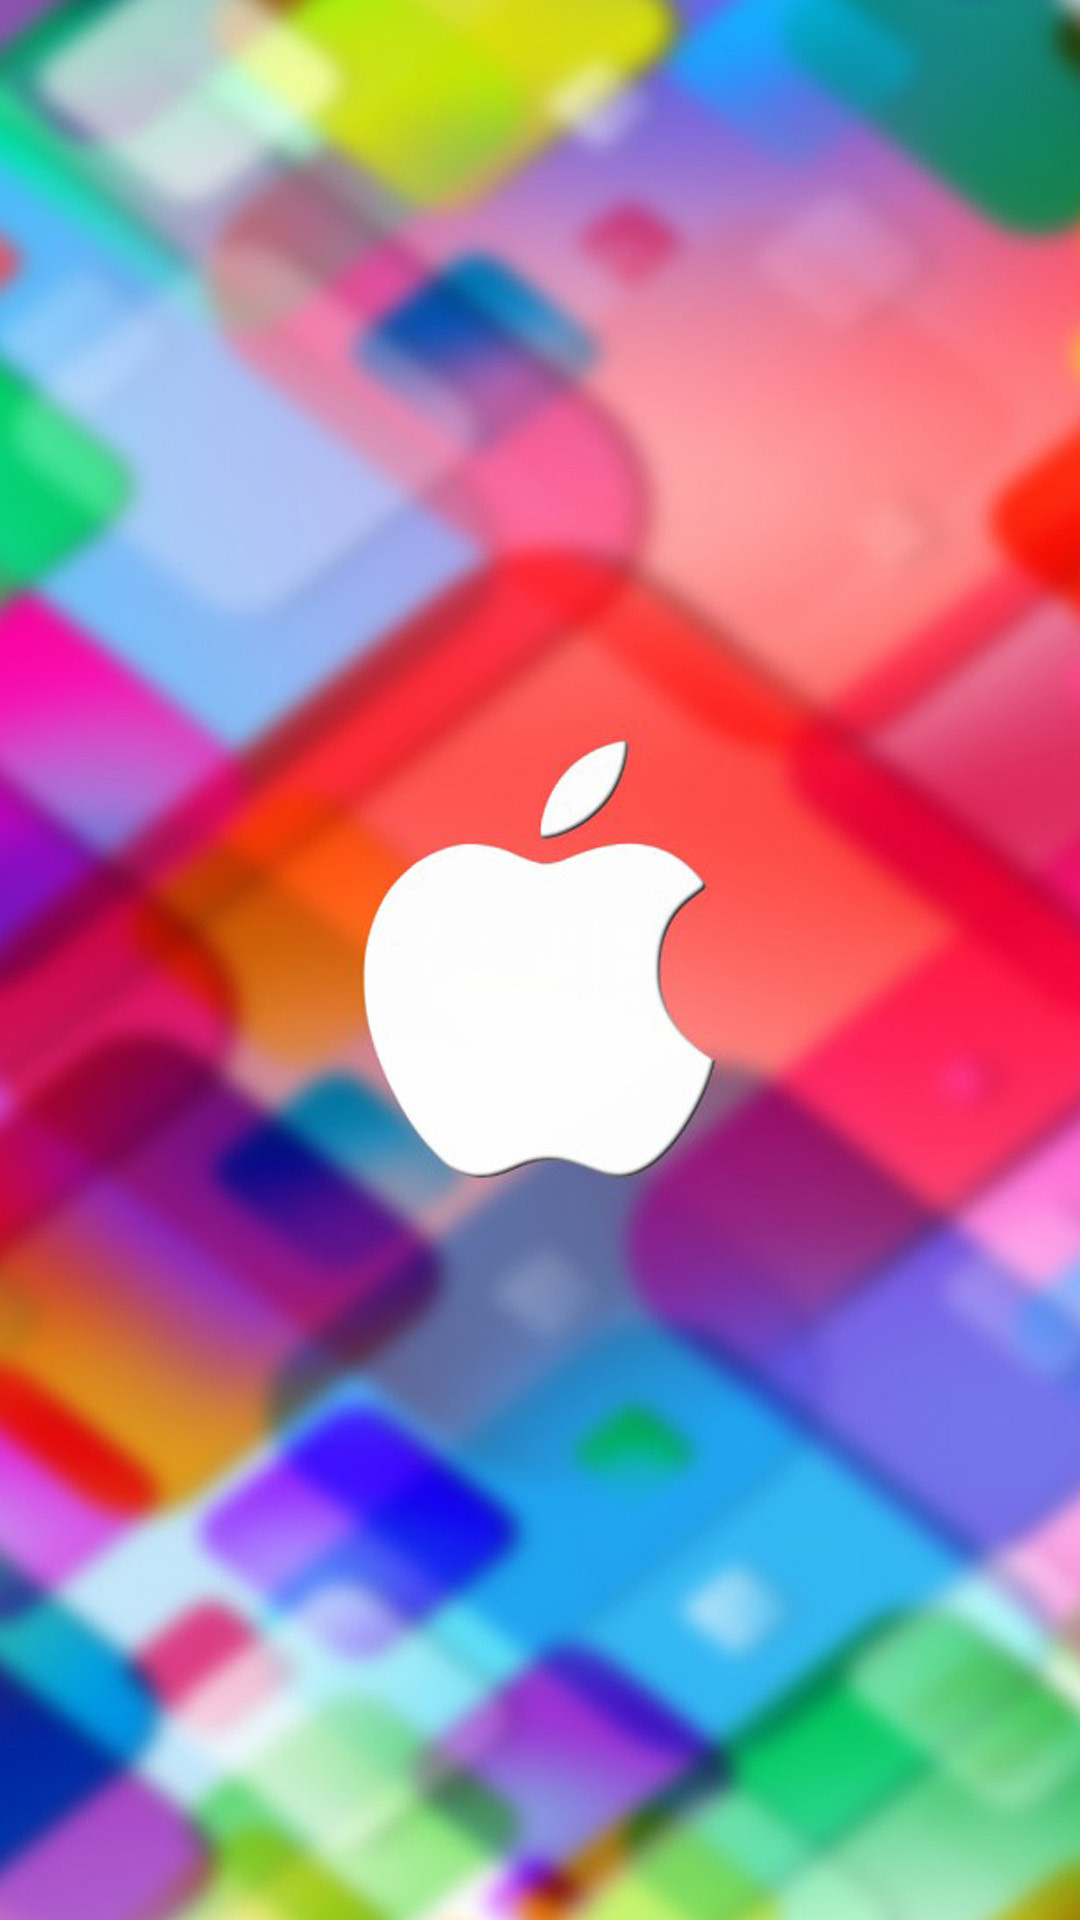 Apple Colourful Wallpapers Designed For iPhone